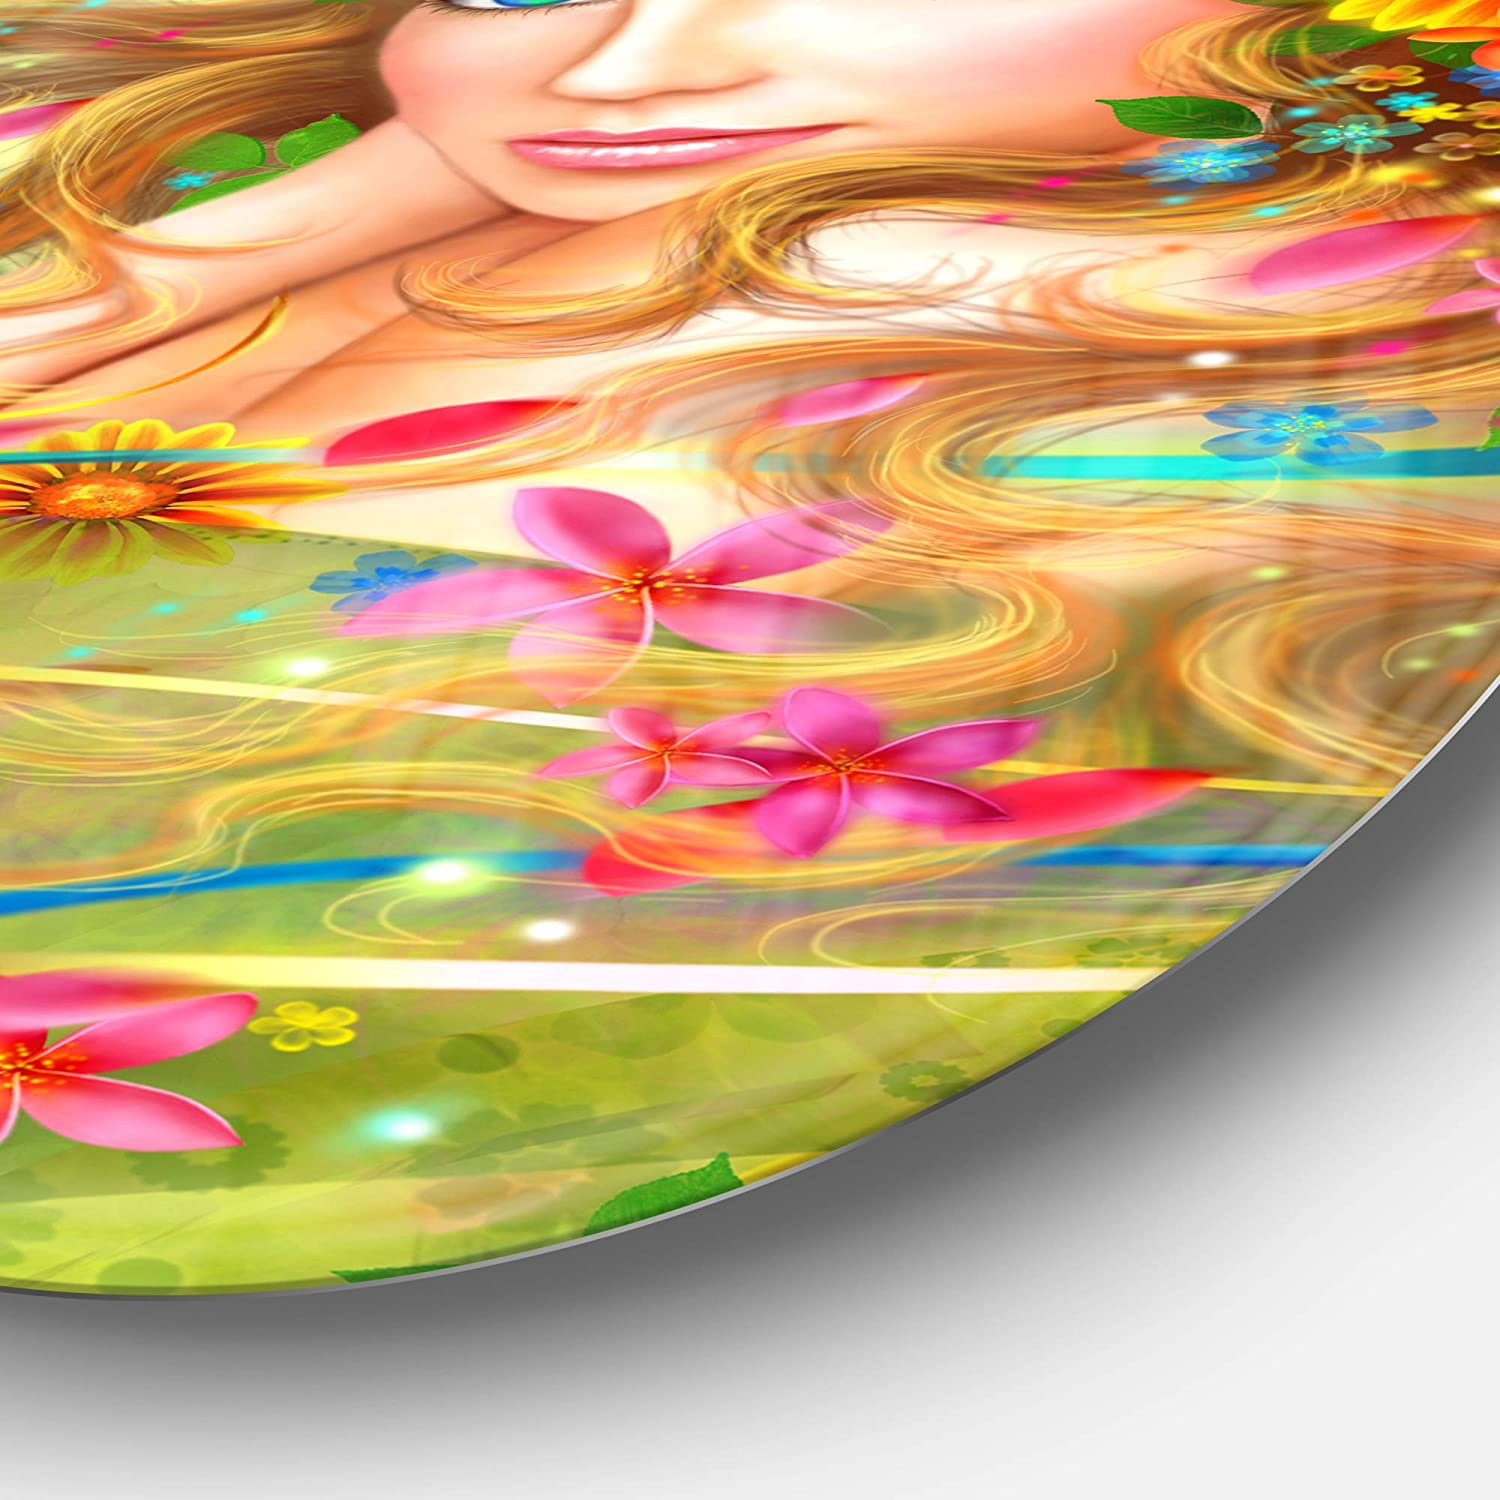 Disc of 23 inch 23 H x 23 W x 1 D 1P Green//Red Designart Fairy Woman with Colorful Flowers Floral Digital Art Metal Artwork